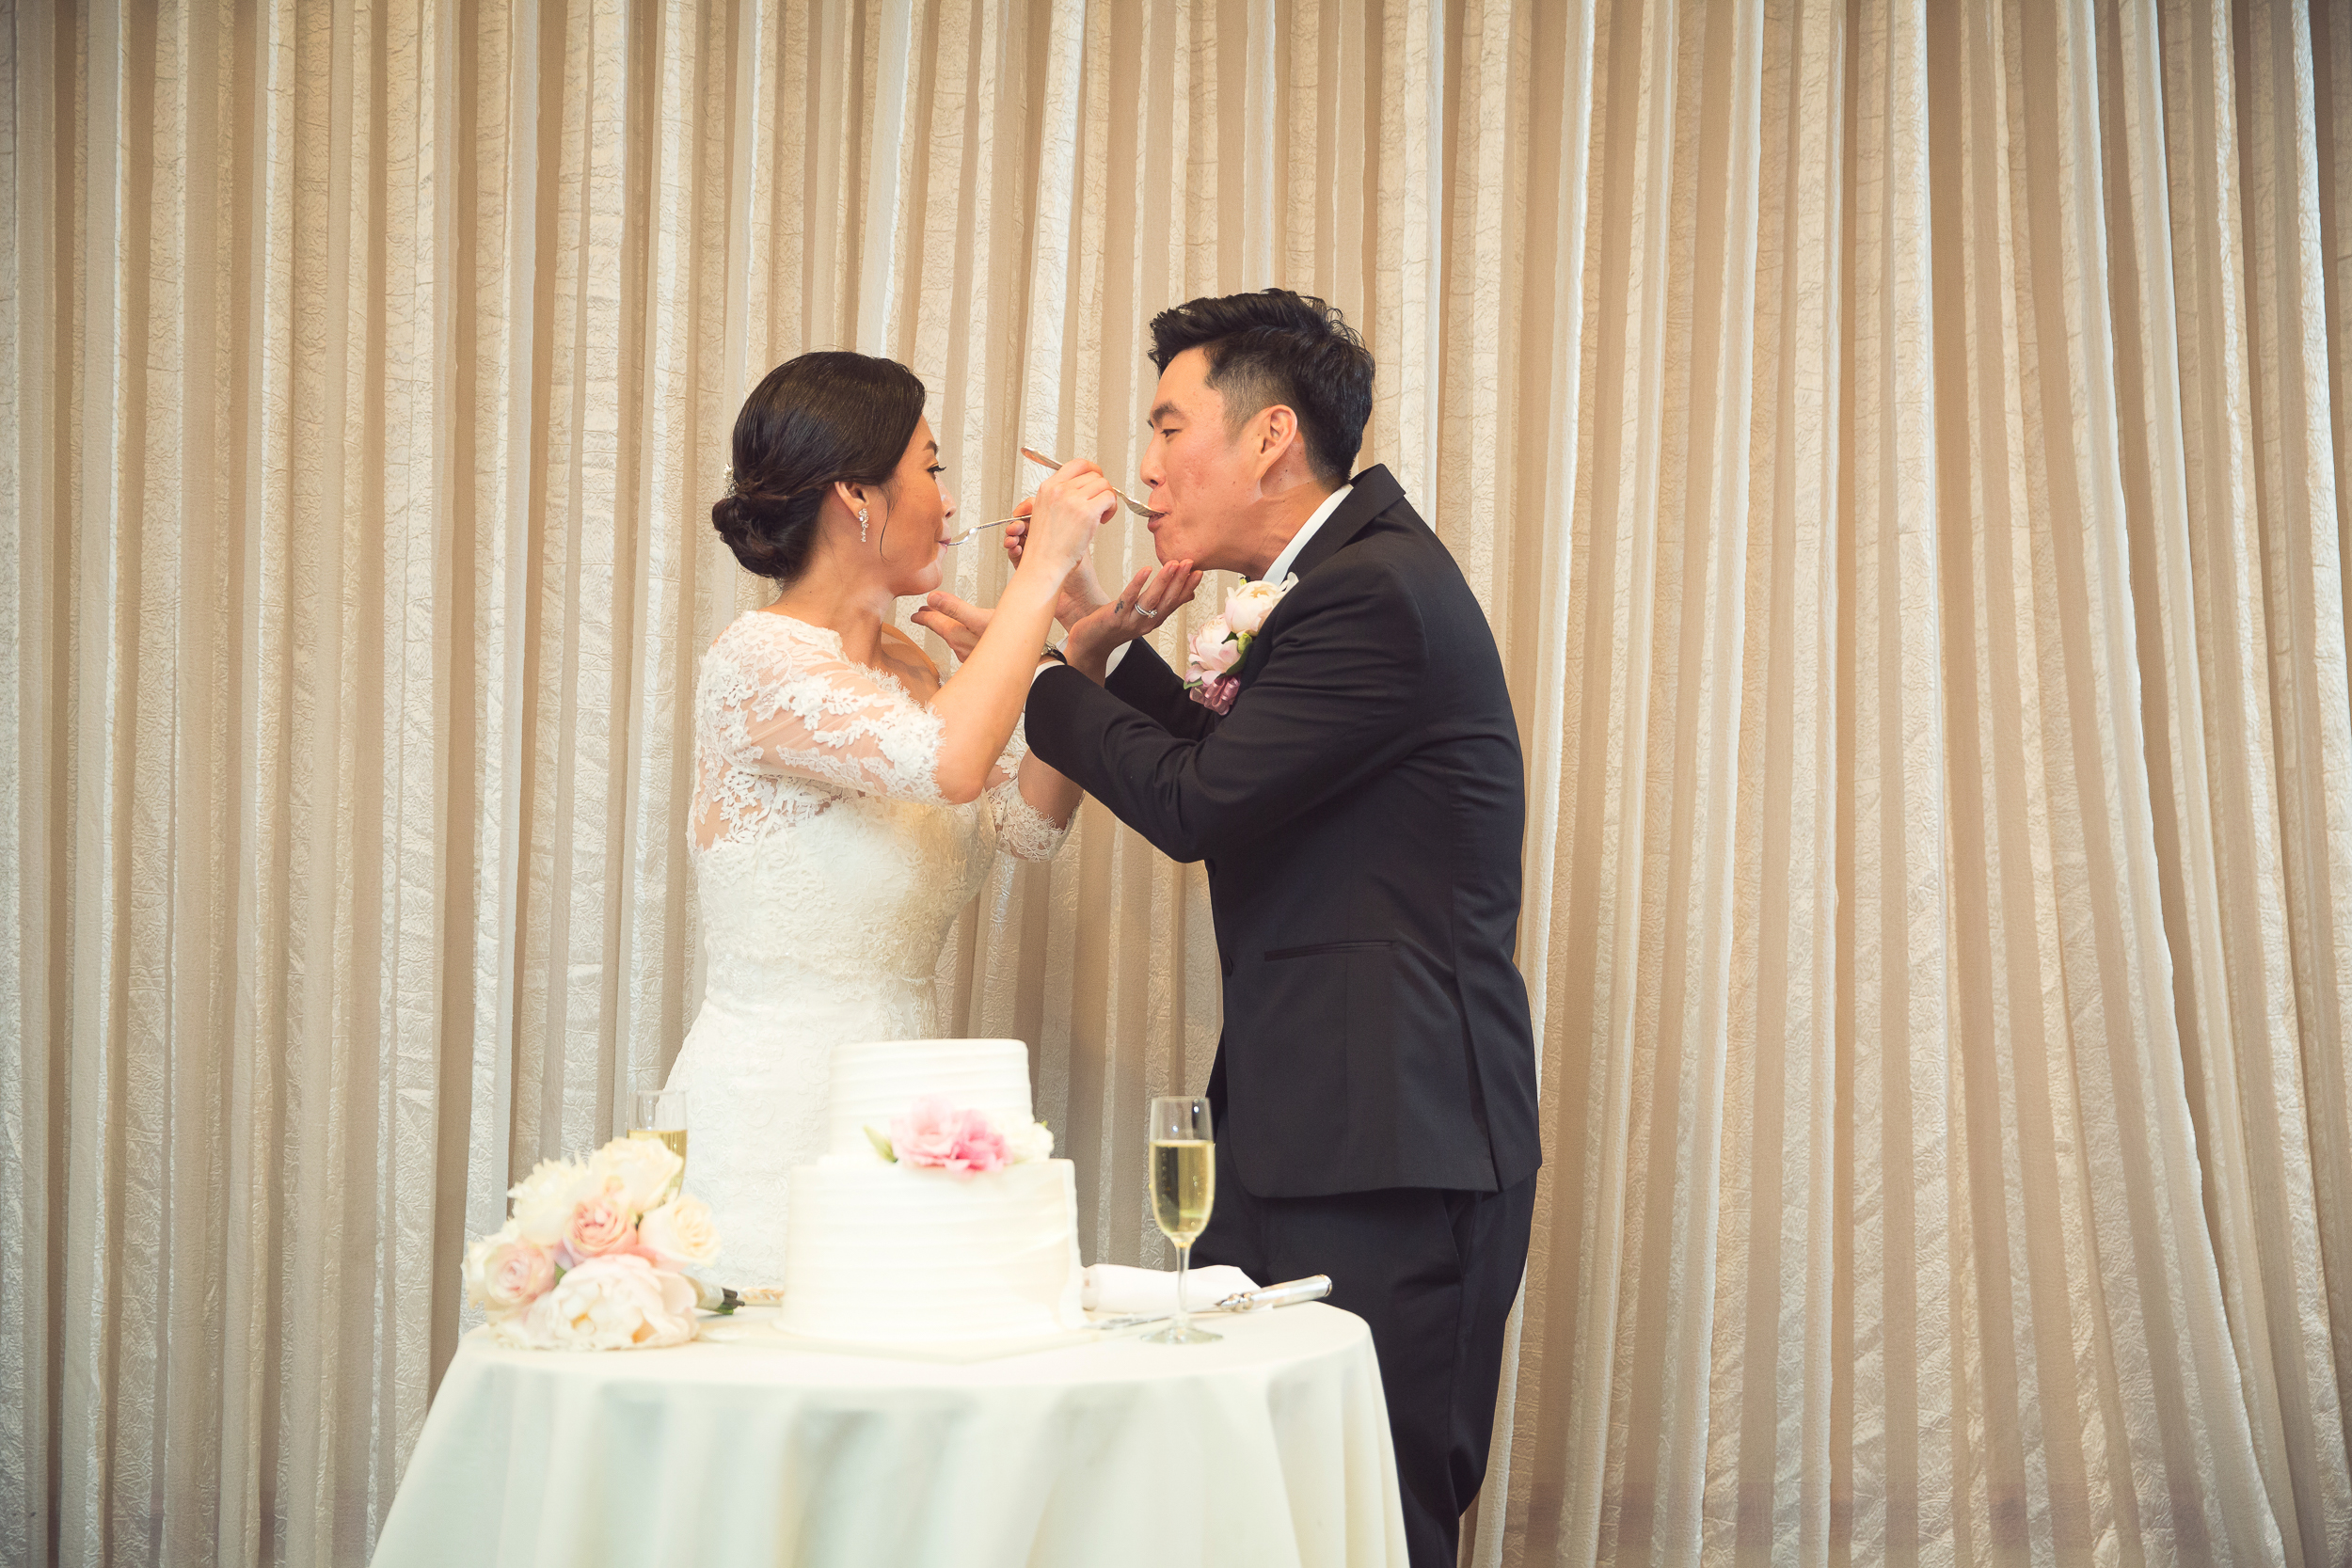 77_Ji Young Choi & Kyungmin Song Wedding